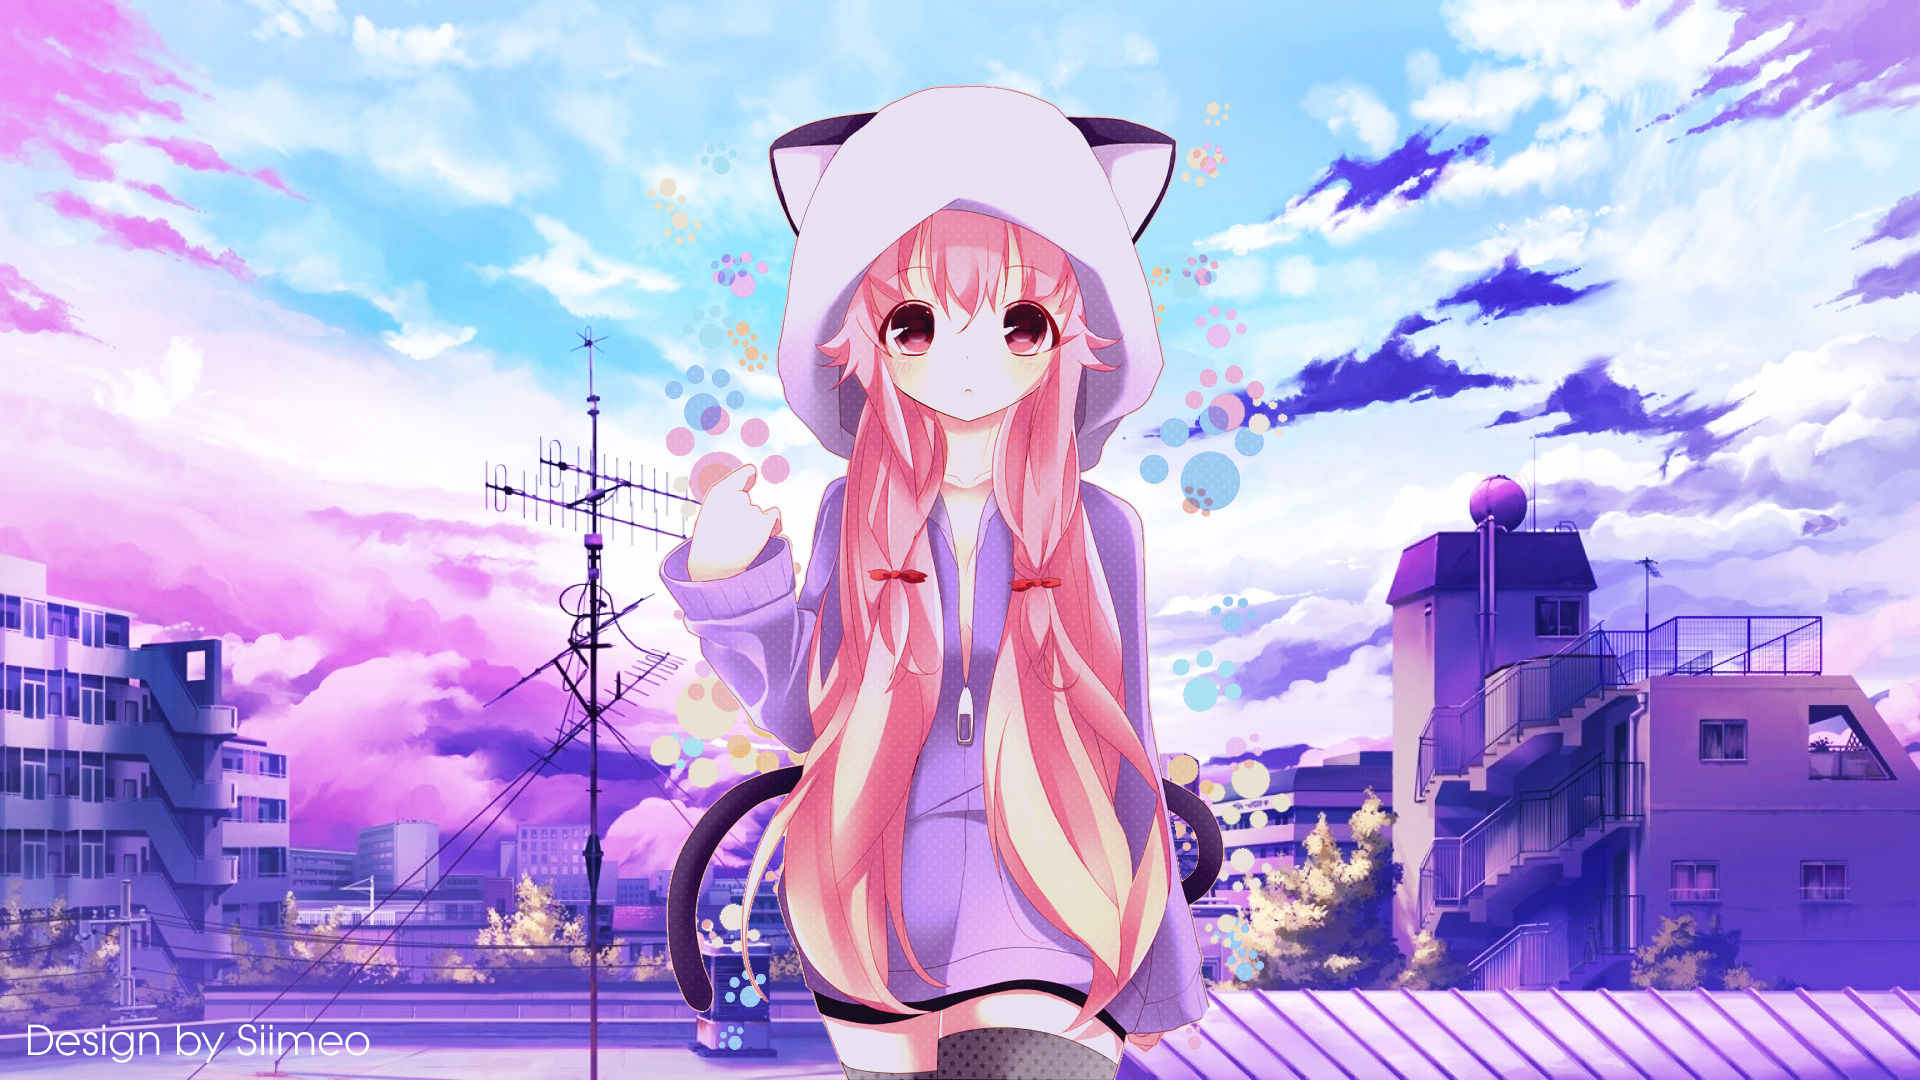 Anime Wallpapers Best Anime Wallpapers Wide Full HD Pics 1920x1080